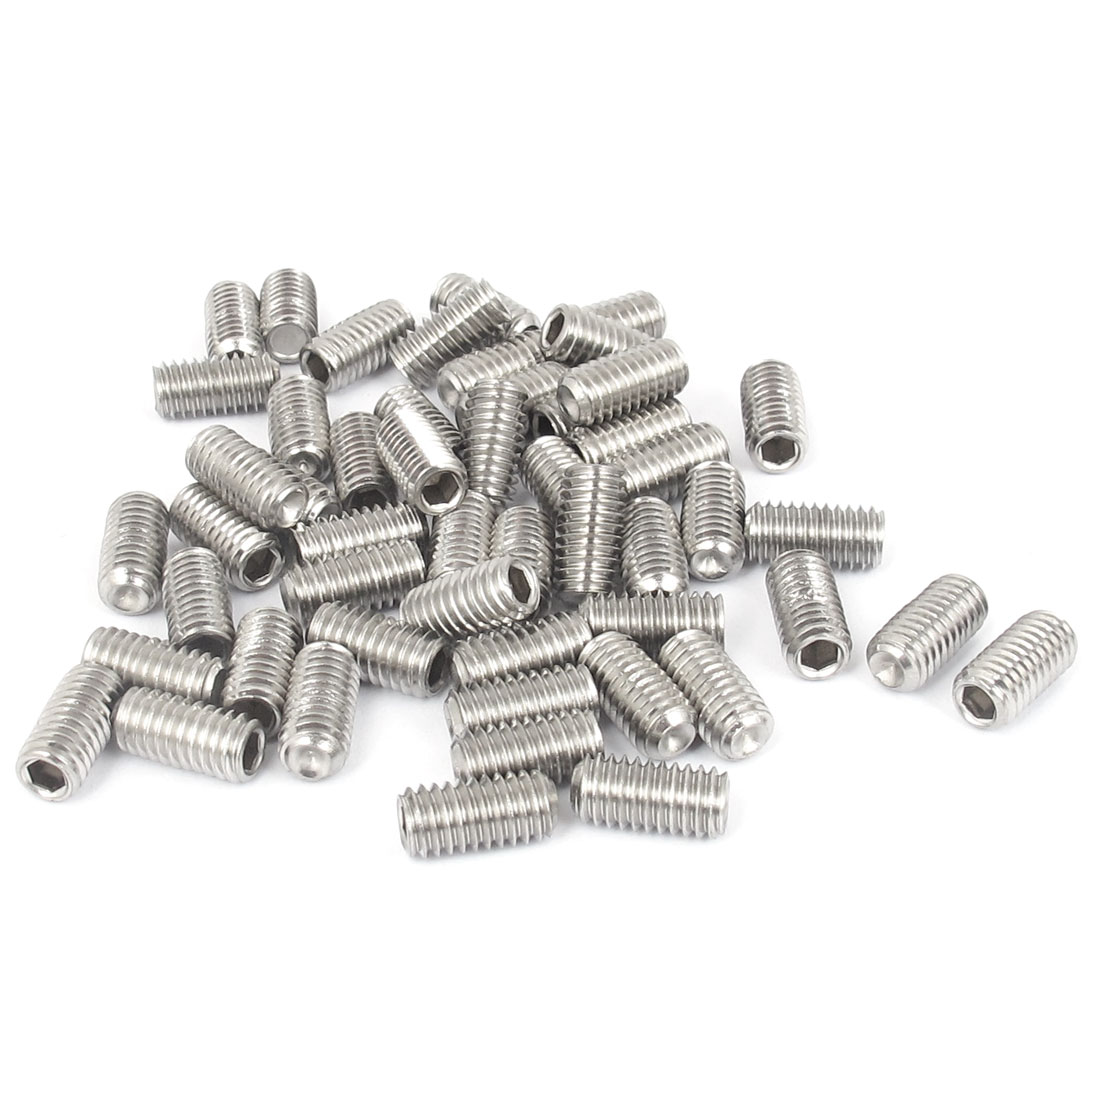 M6x12mm Stainless Steel Hex Socket Set Cap Point Grub Screws Silver Tone 50pcs